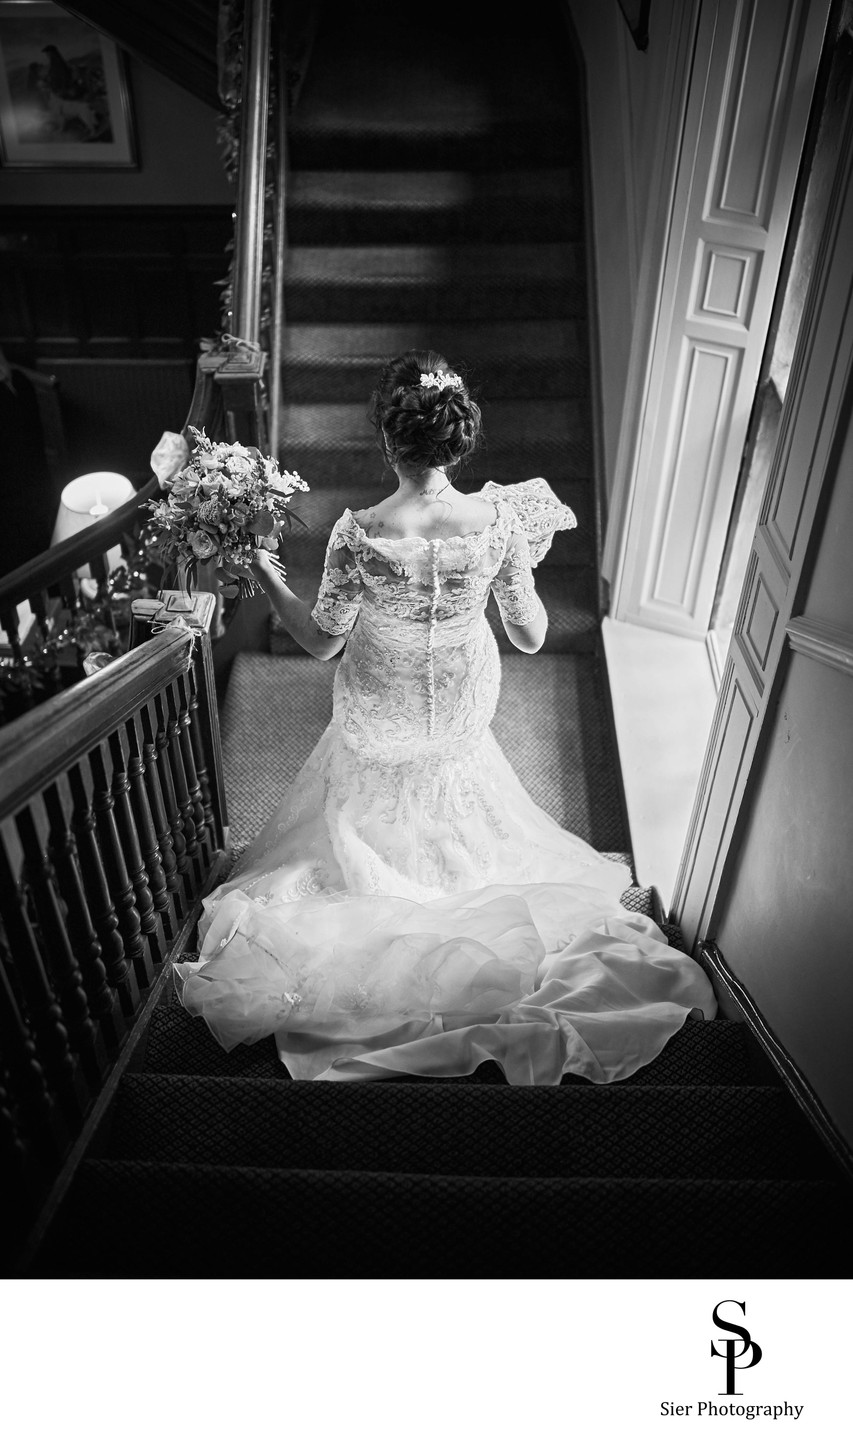 Whitley Hall Hotel Staircase Wedding Photo